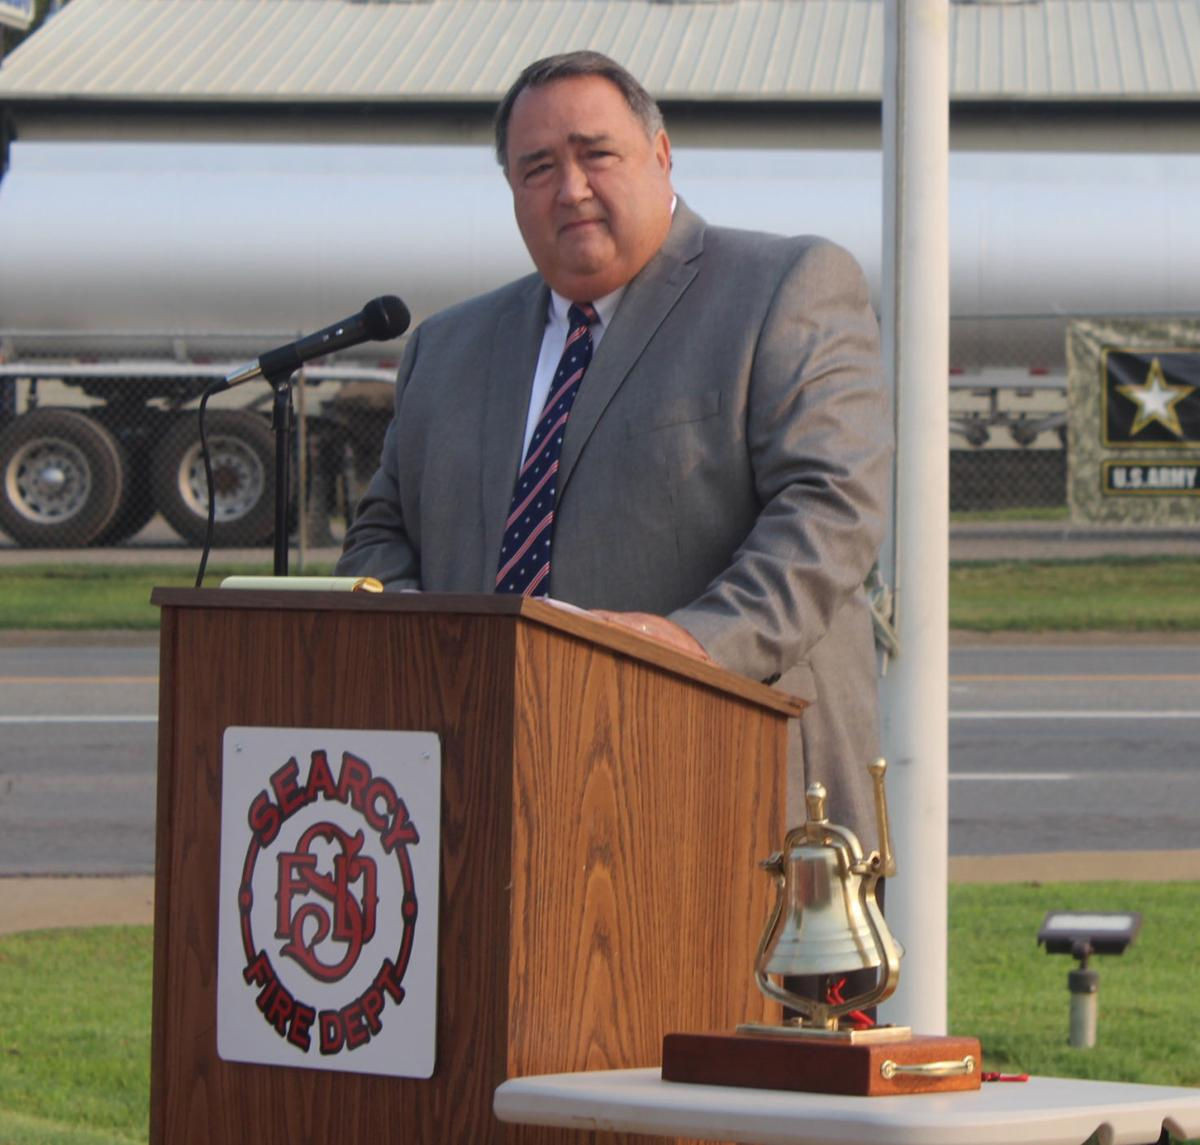 Mayor Kyle Osborne speaks on 20th anniversary of 9/11 at Central Fire Station